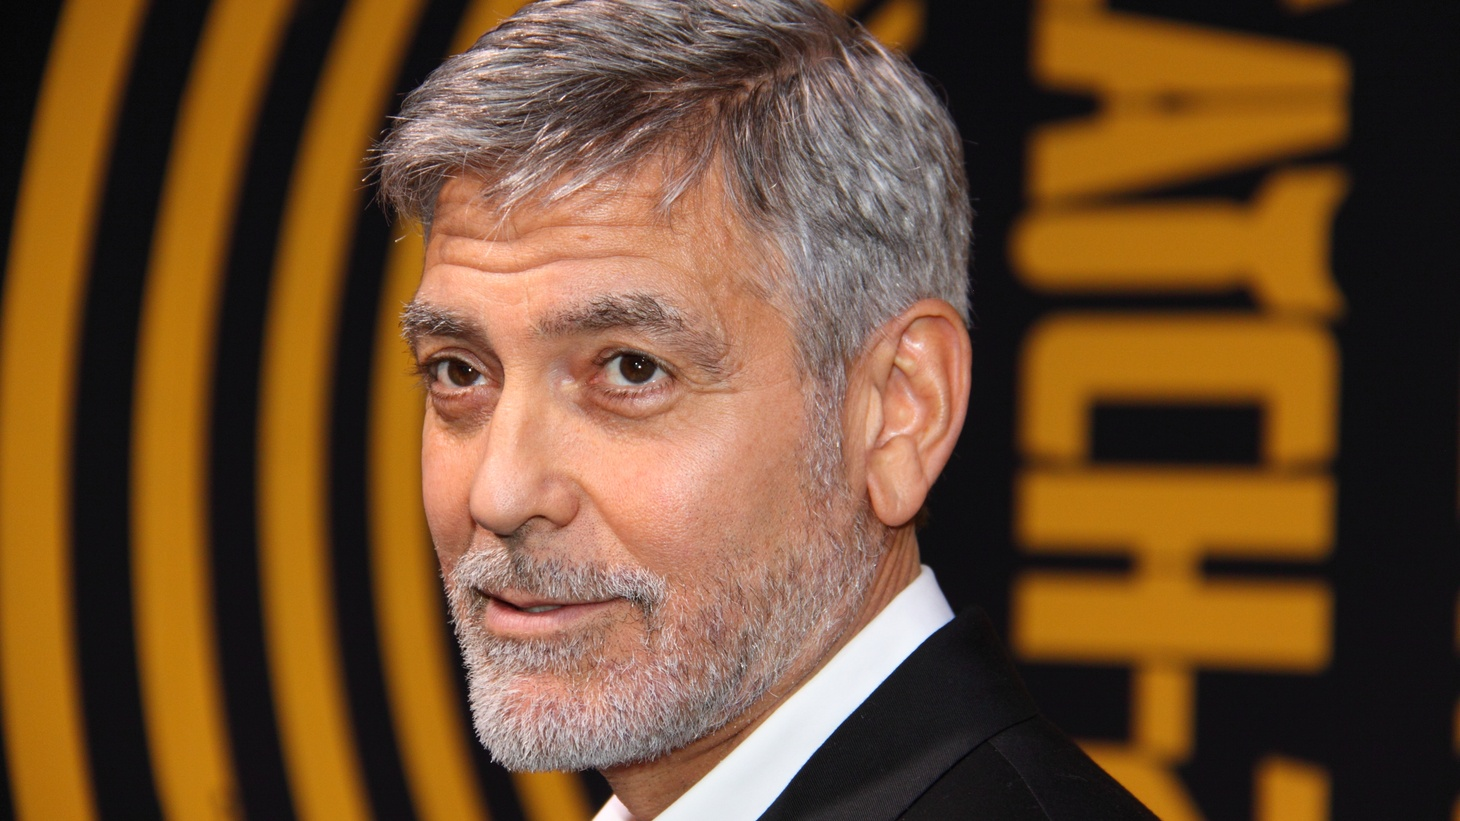 """George Clooney at the premiere of """"Catch-22"""" on May 7, 2019 at the TCL Chinese Theatre in Hollywood, CA. Clooney and other celebrities are working with the Los Angeles Unified School District to try to open a new school on TV and film production in fall 2022."""